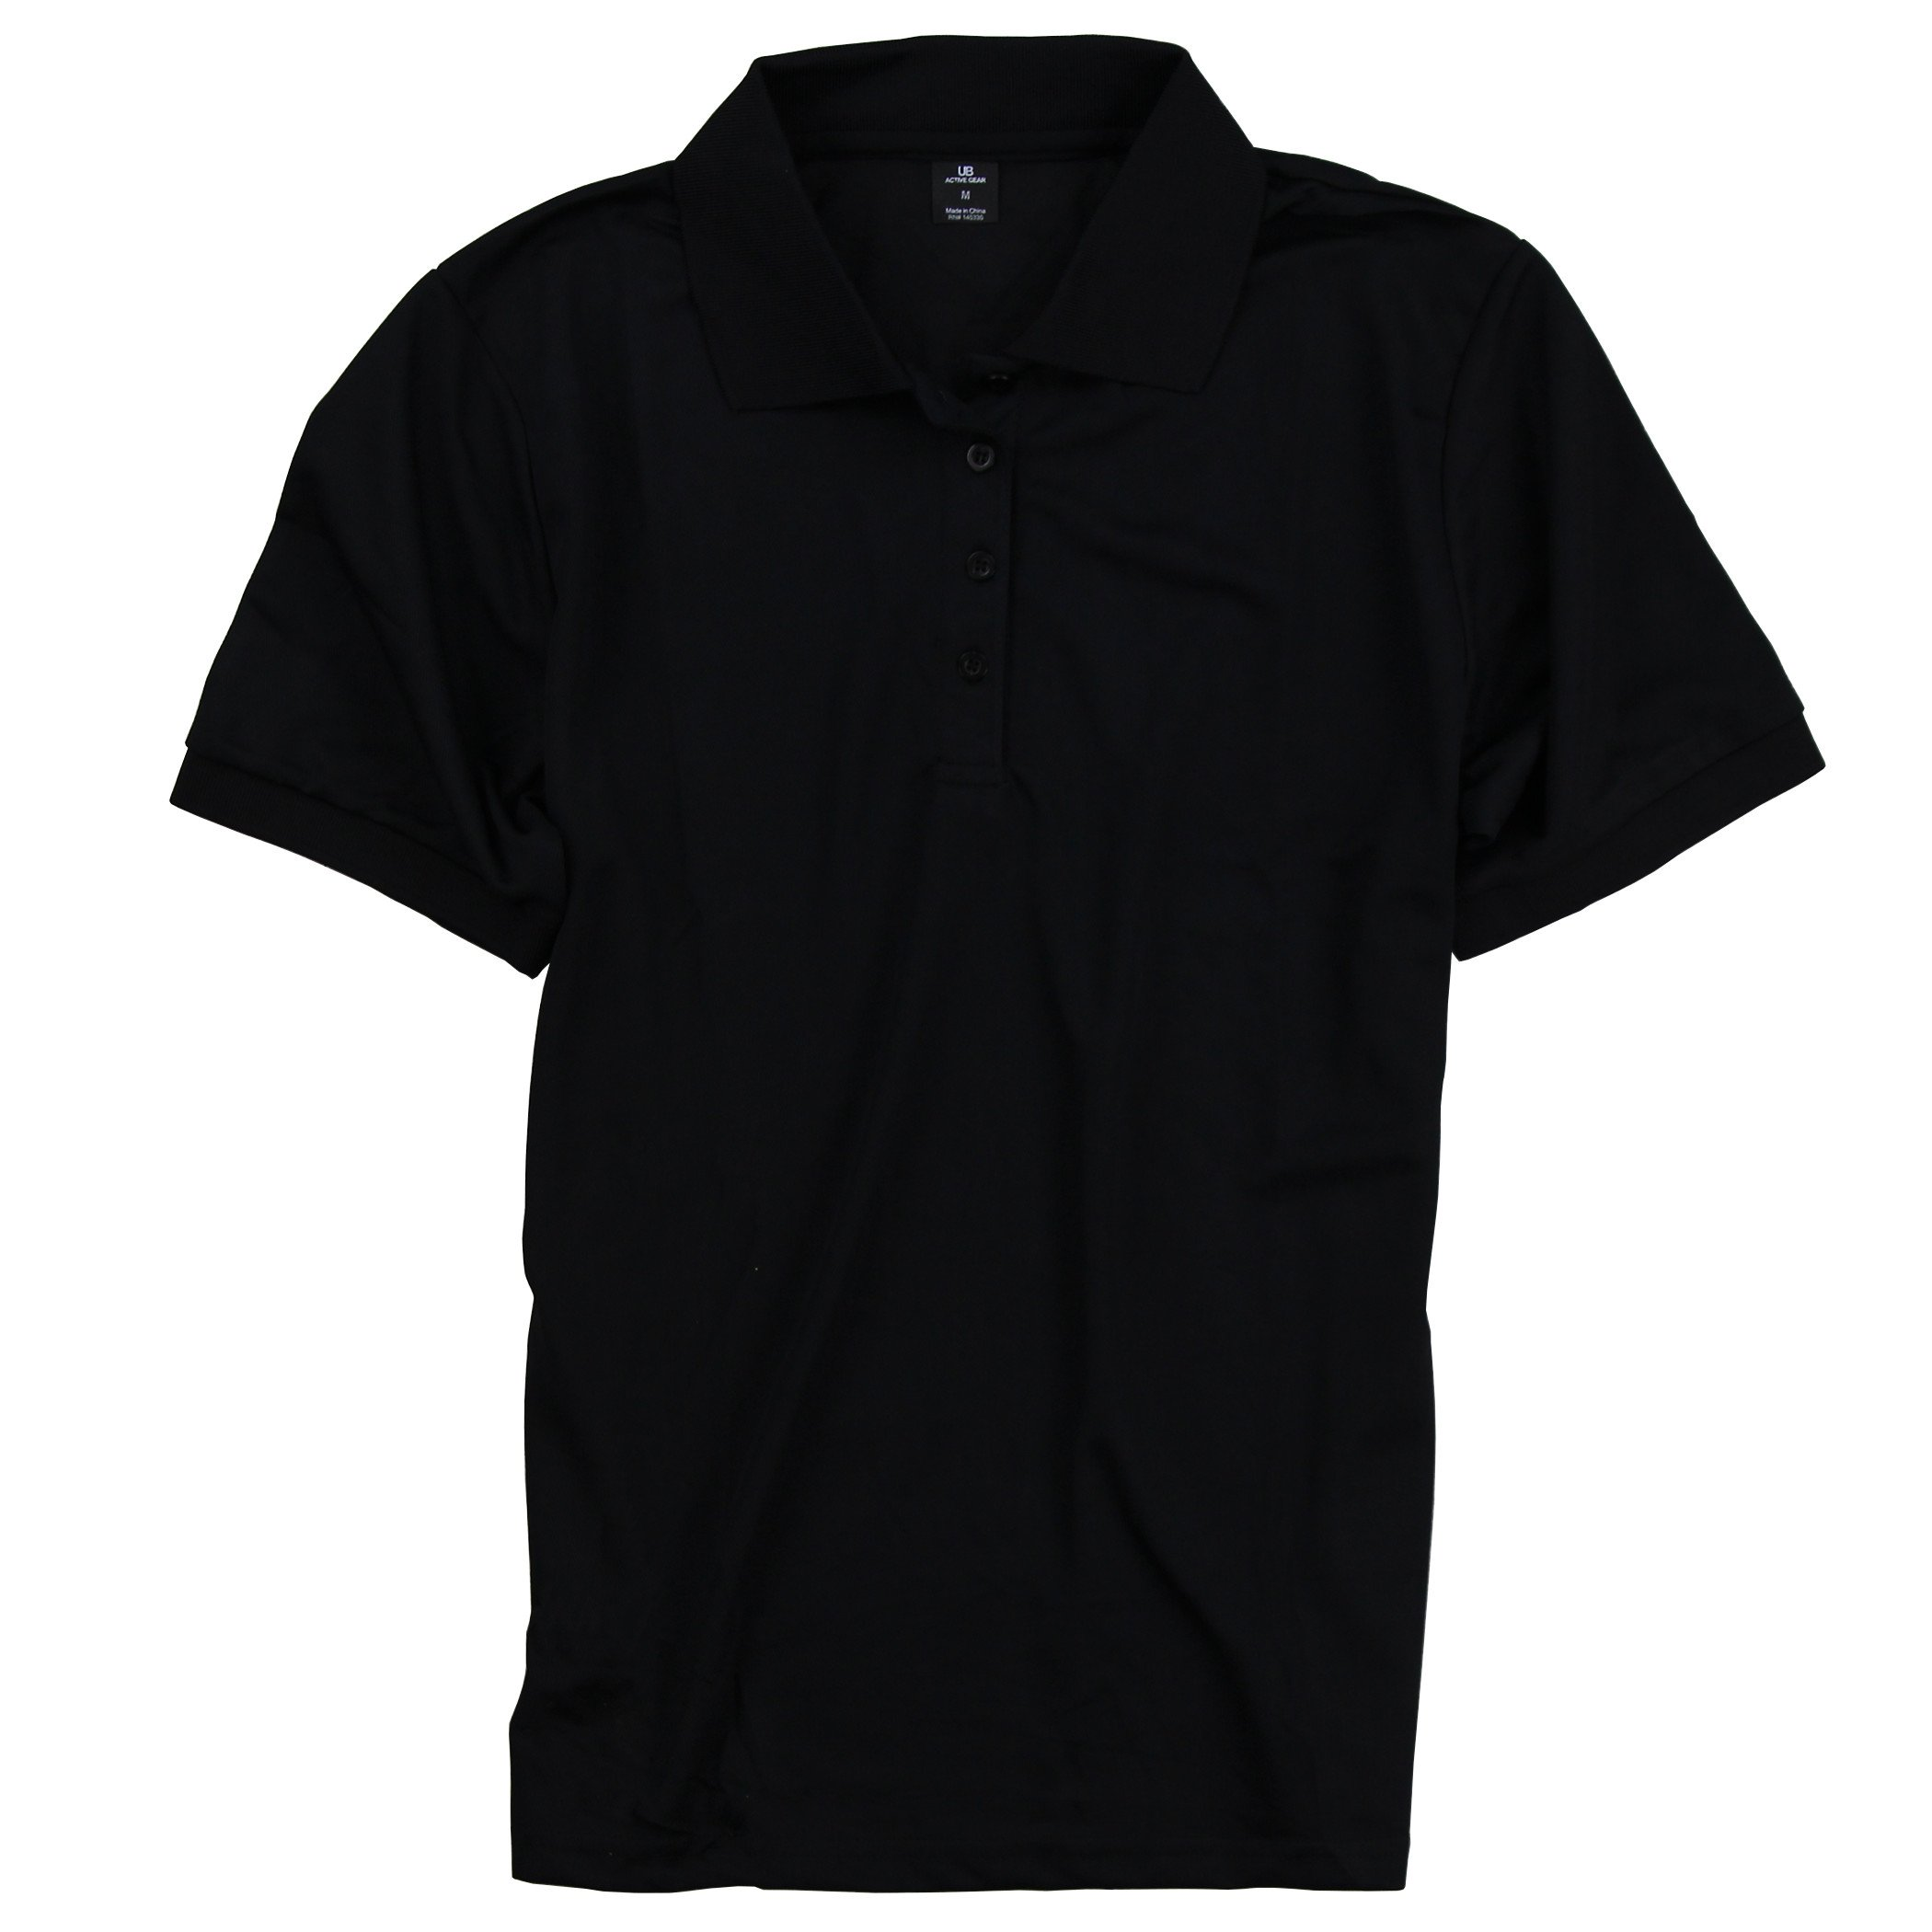 Urban Boundaries Women's Lightweight Active Collared Sports Polo UPF 30+ Protection (Black, Large)